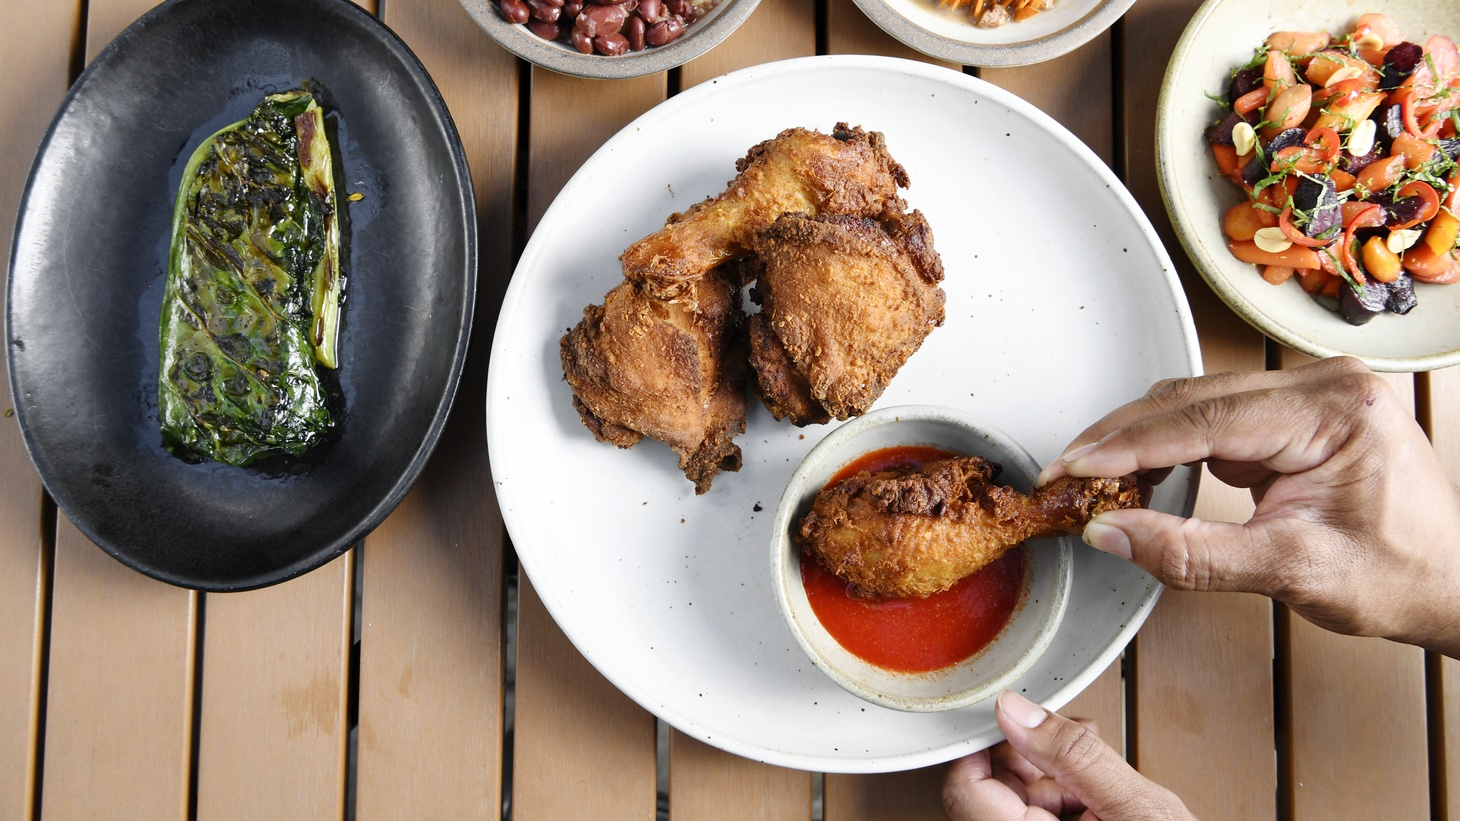 Alta Adams Fried Chicken with collards and other side dishes.